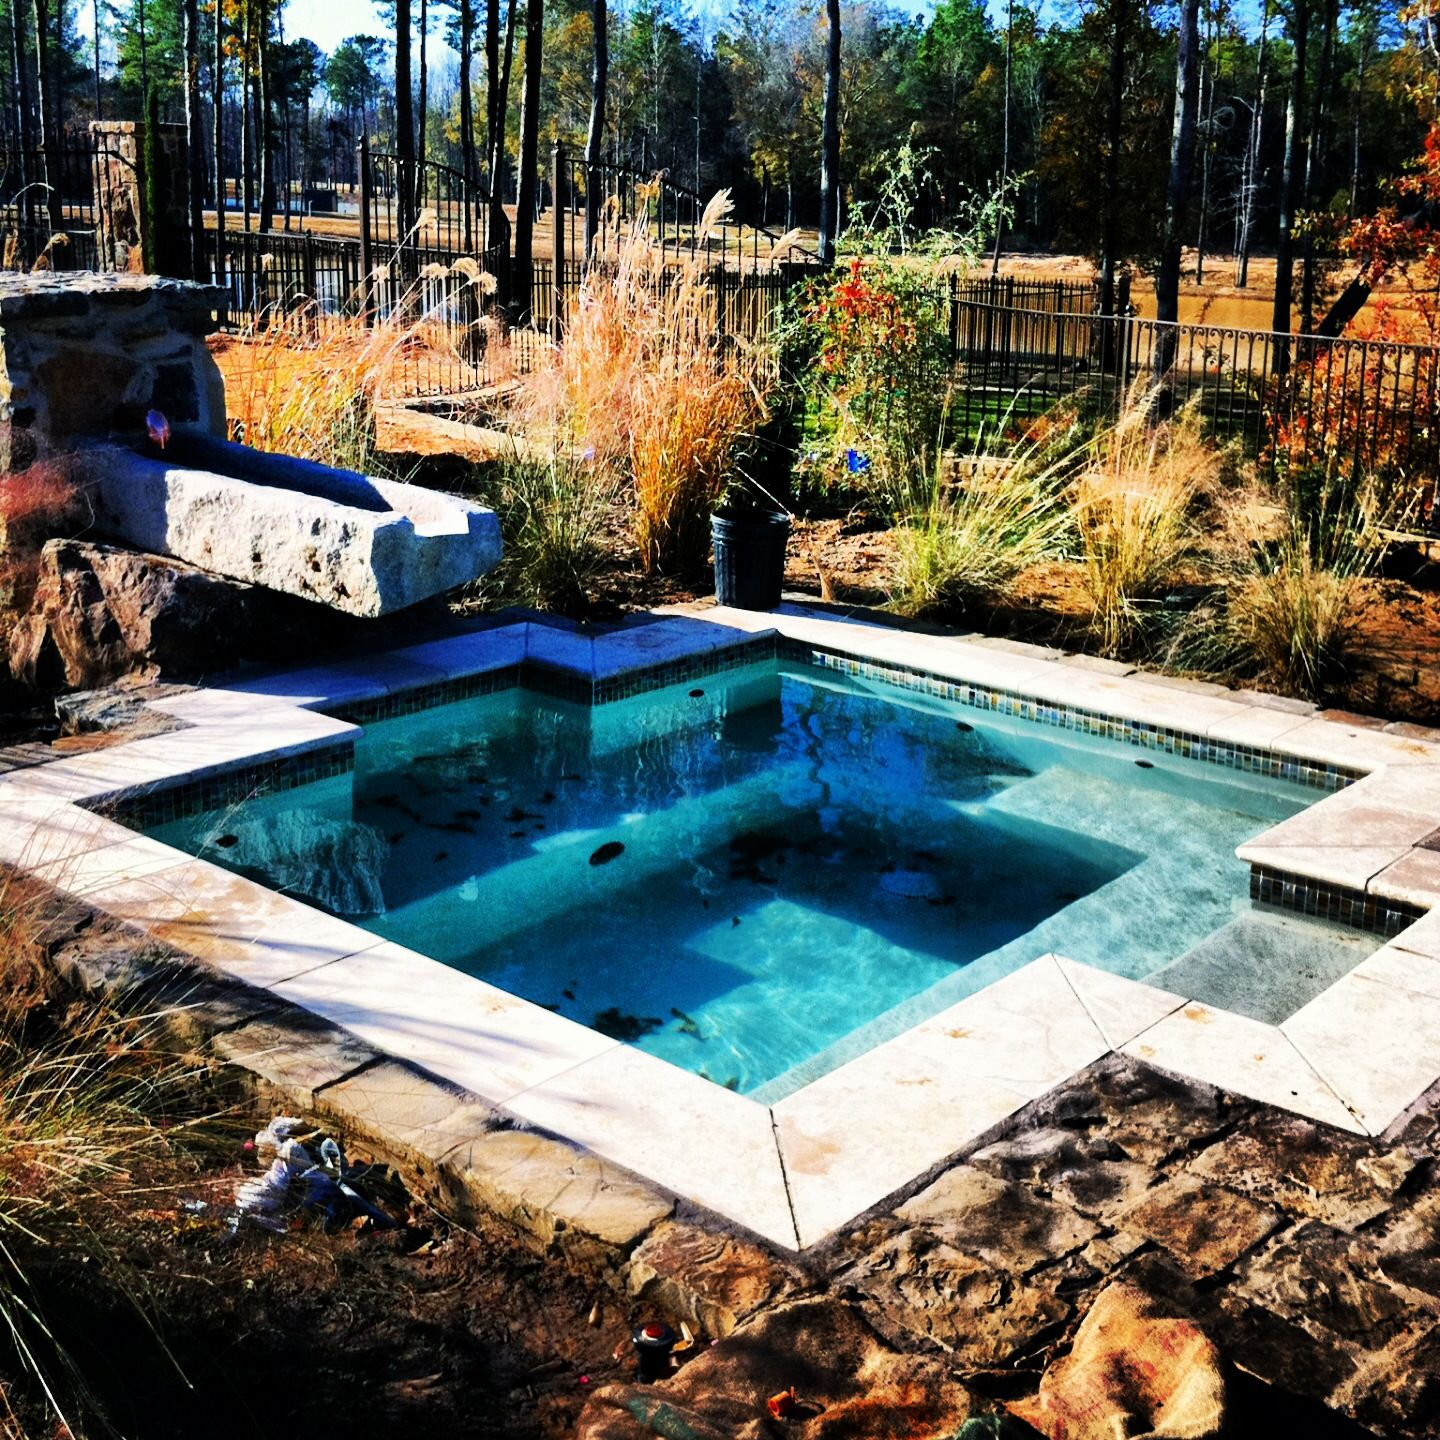 Custom gunite spa hot tub with waterfall scupper water feature, designed  and constructed by Preferred